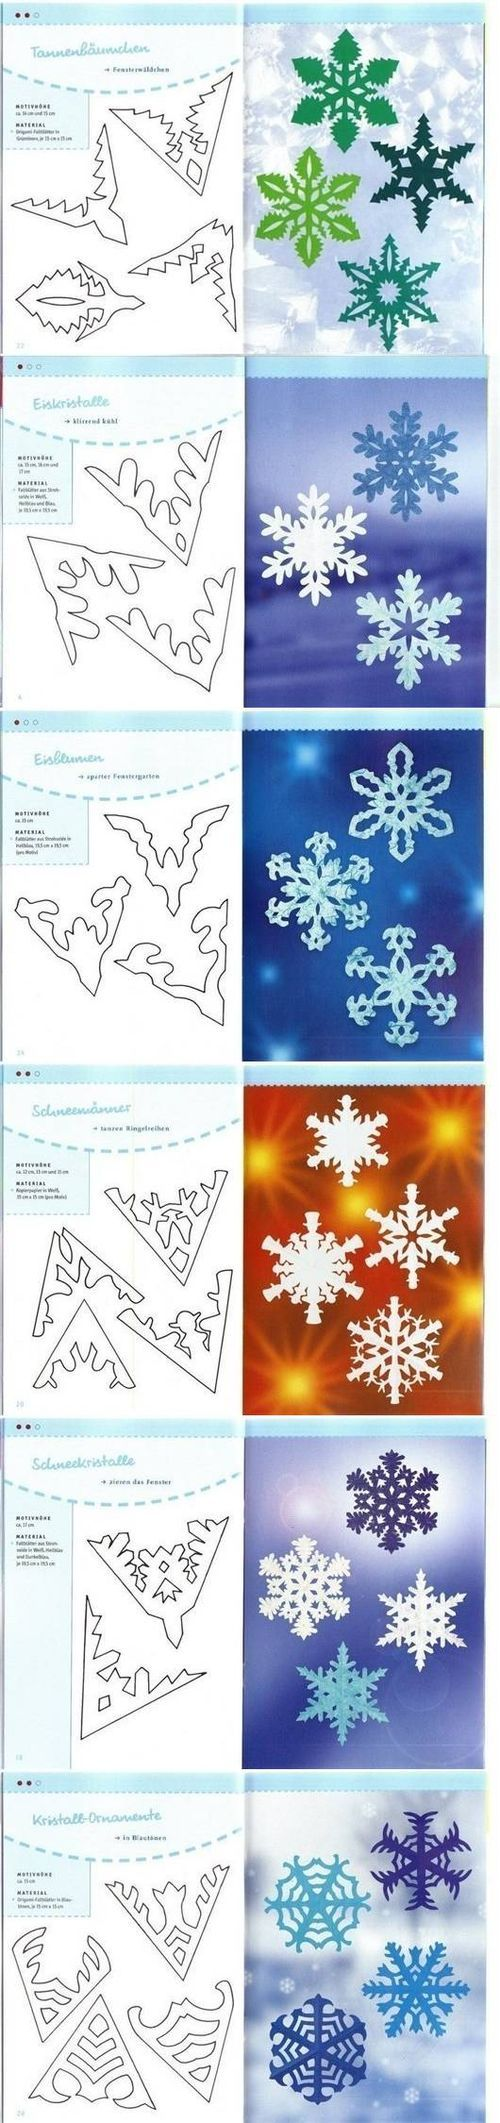 DIY Paper Schemes of Snowflakes DIY Projects / UsefulDIY.com: